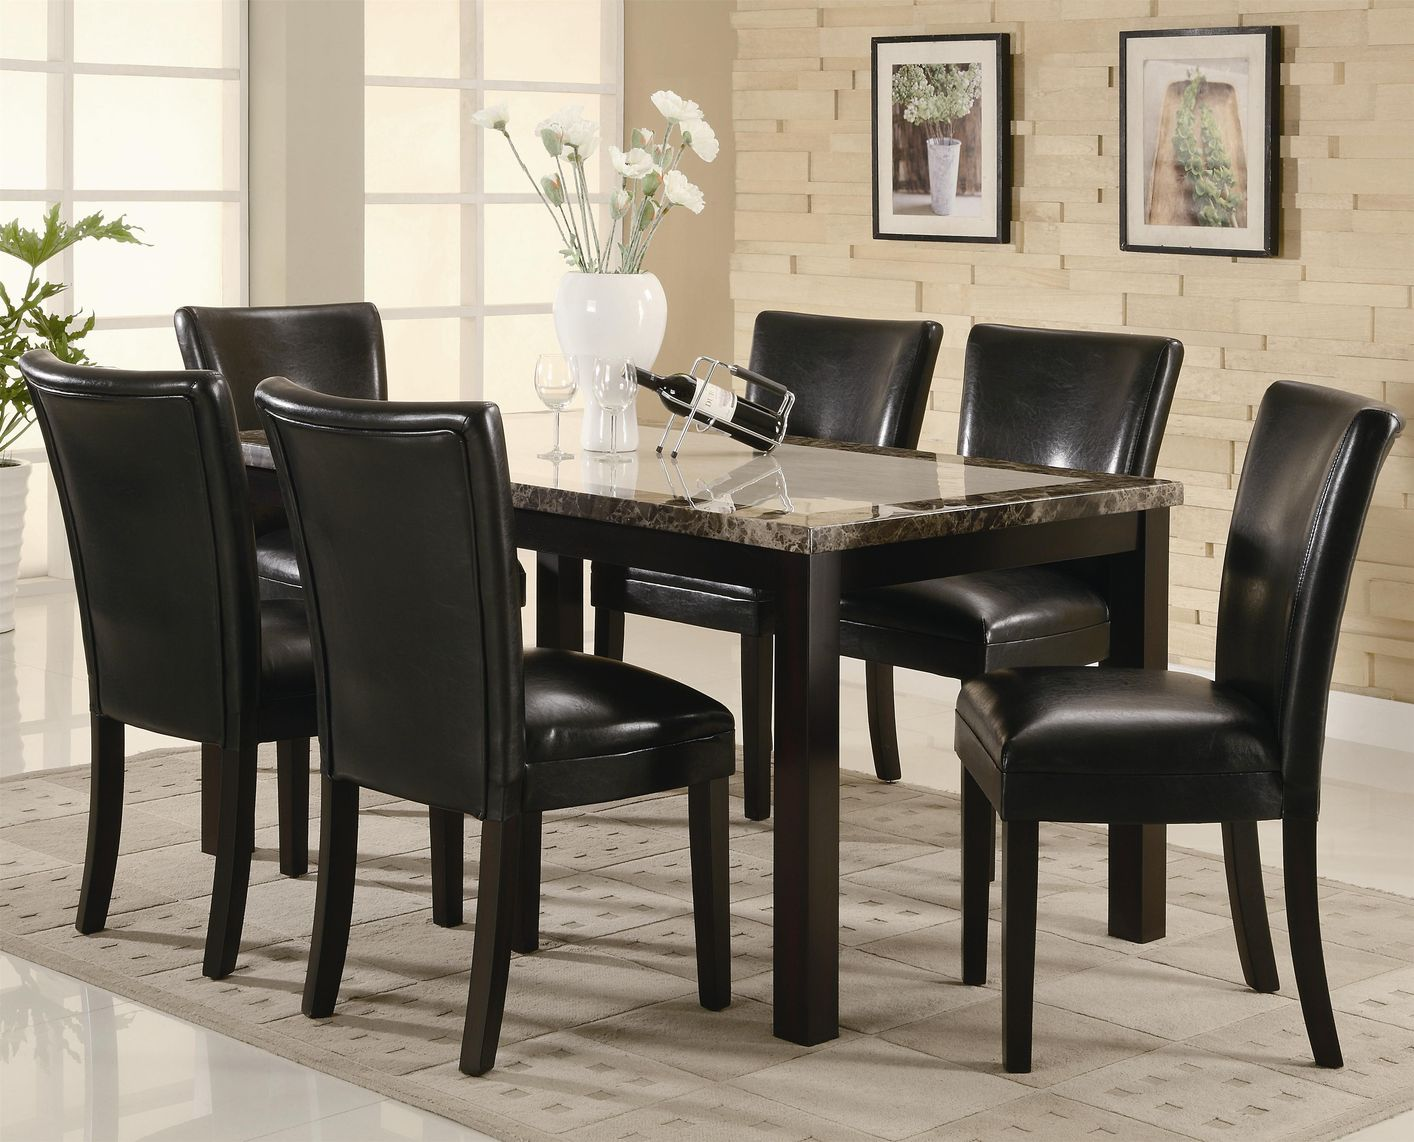 ... 102260 102262 Brown Wood And Marble Dining Table Set In Los Angeles Ca